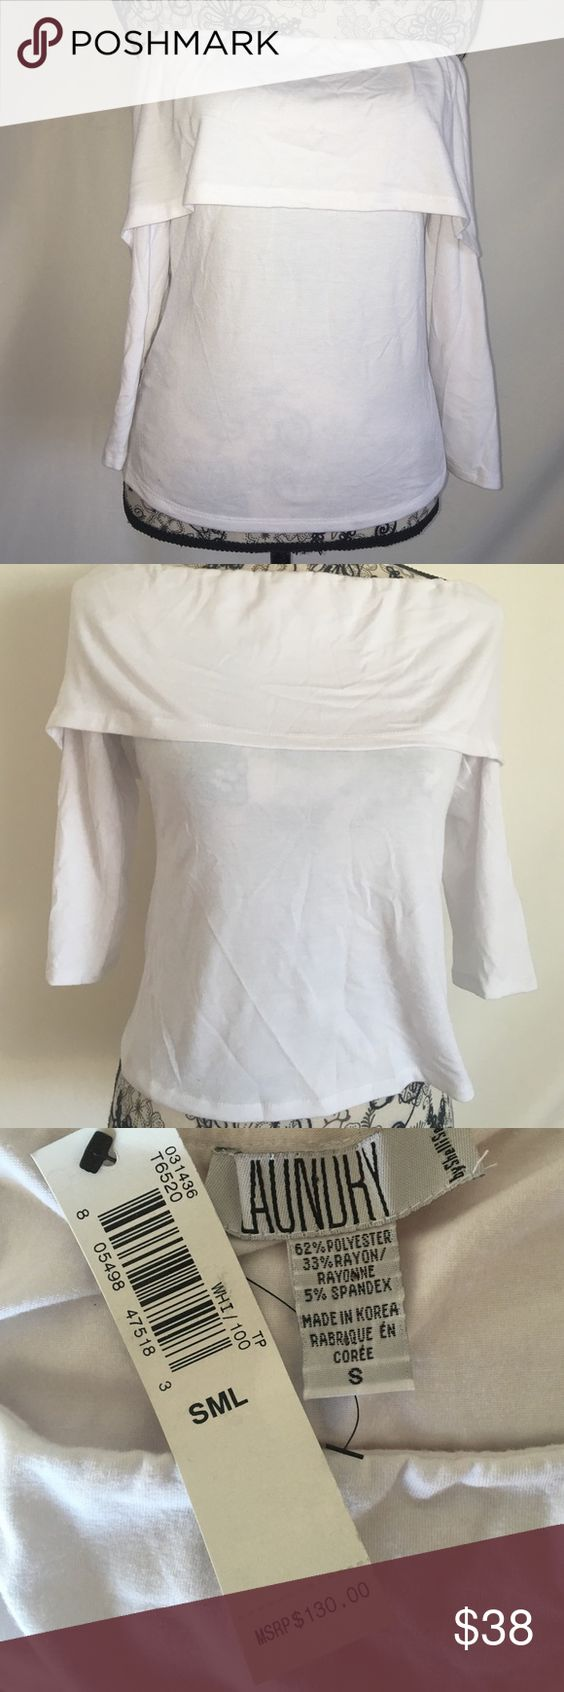 Laundry by Shelli Segal top Off the shoulder or on.  Shirt needs to be ironed, but NWT. Size small Laundry by Shelli Segal Tops